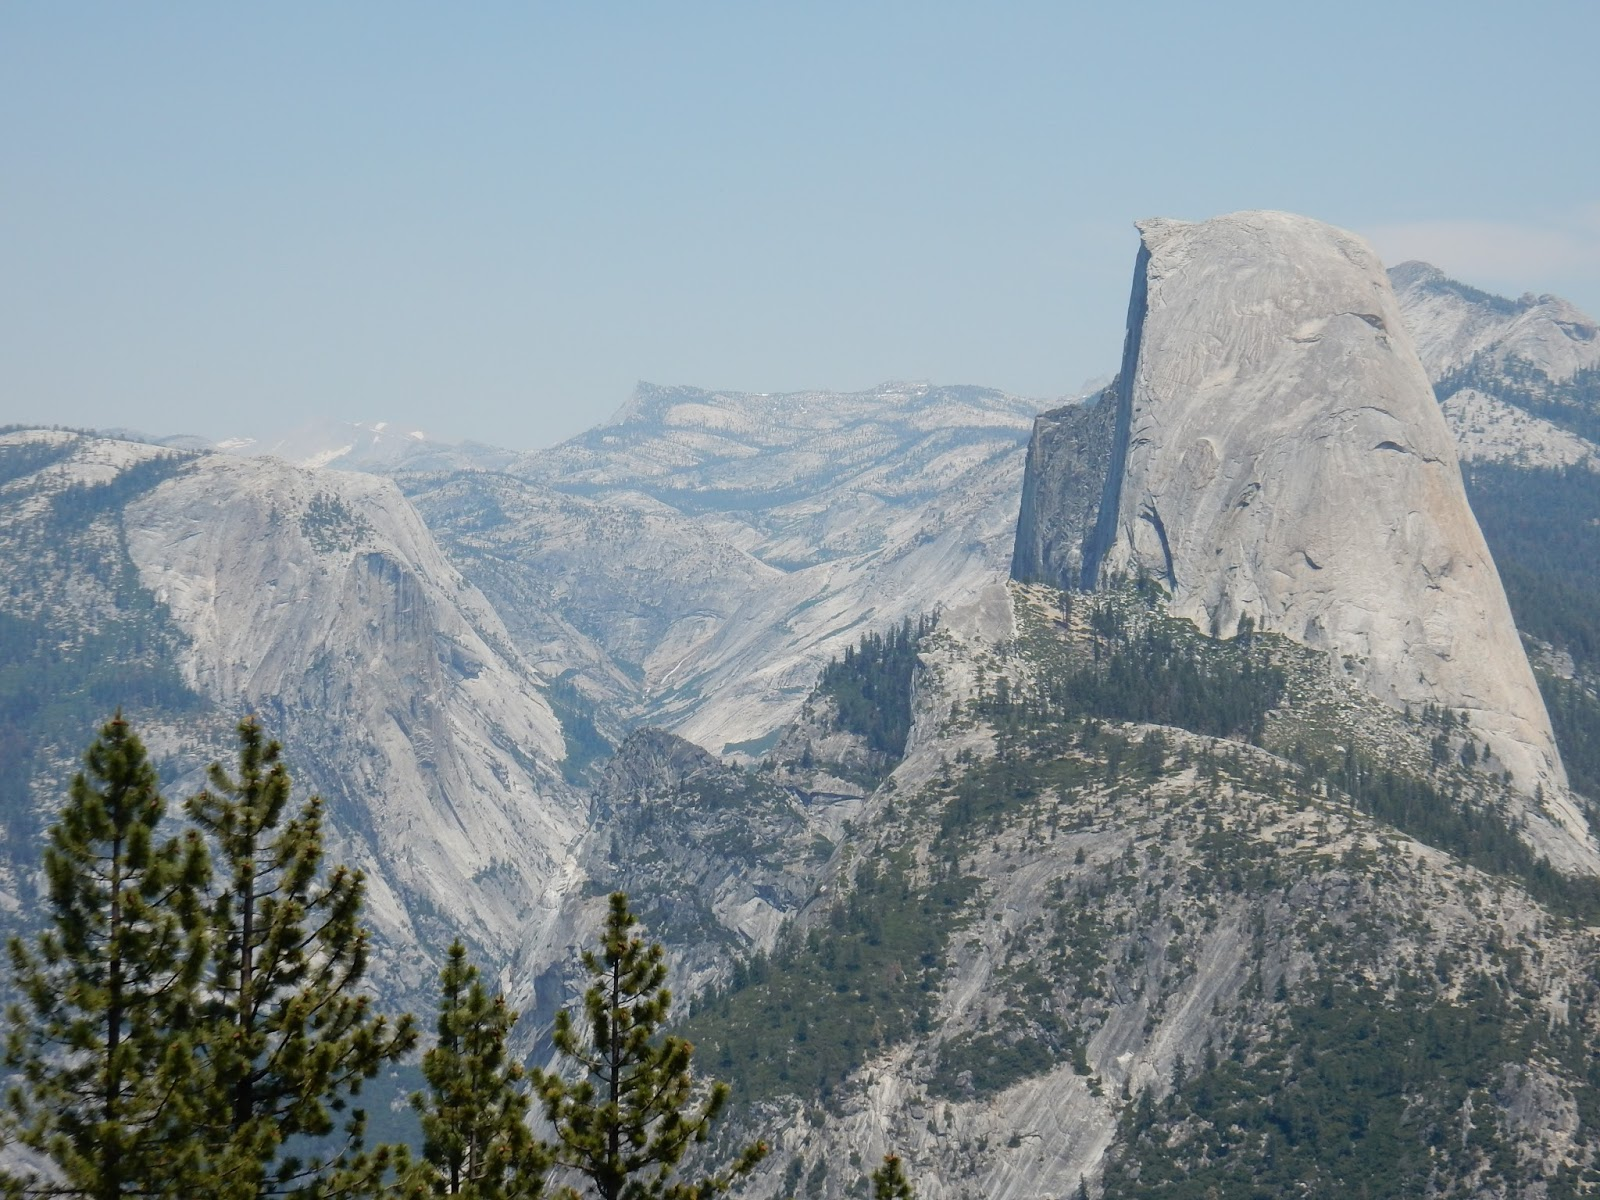 Visita al Yosemite National Park